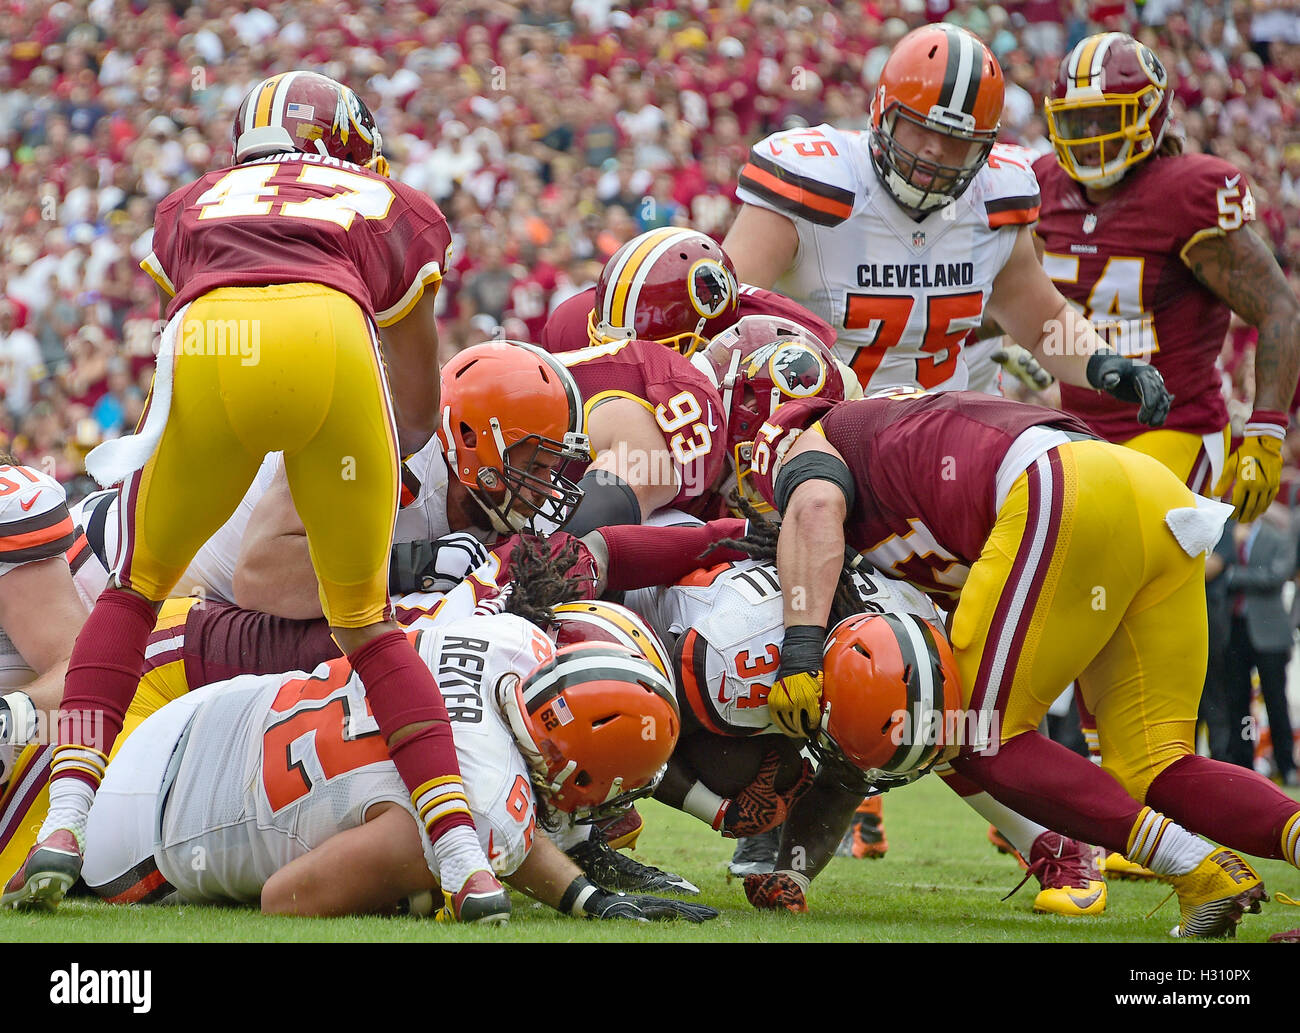 Landover, Maryland, USA. 2. Oktober 2016. Cleveland Browns Runningback Jesaja Crowell (34) punktet seinem Team den Stockfoto